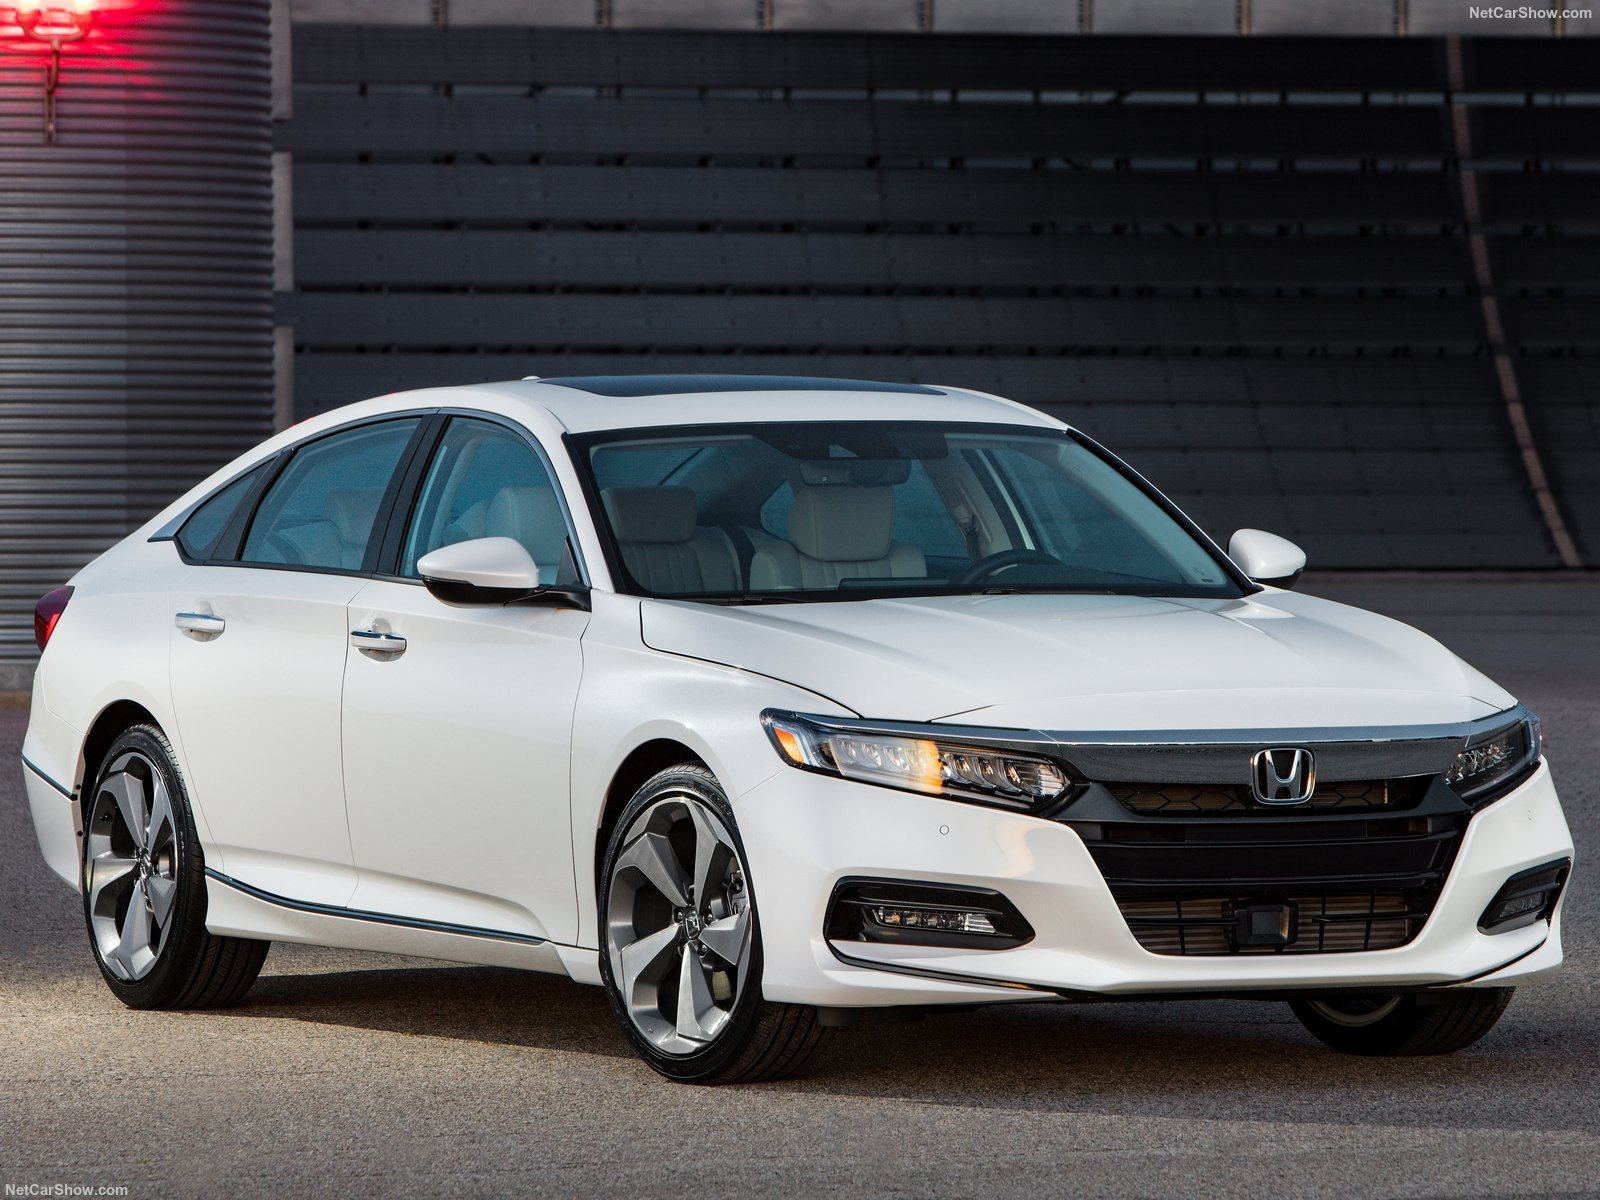 Honda Accord photo 182158